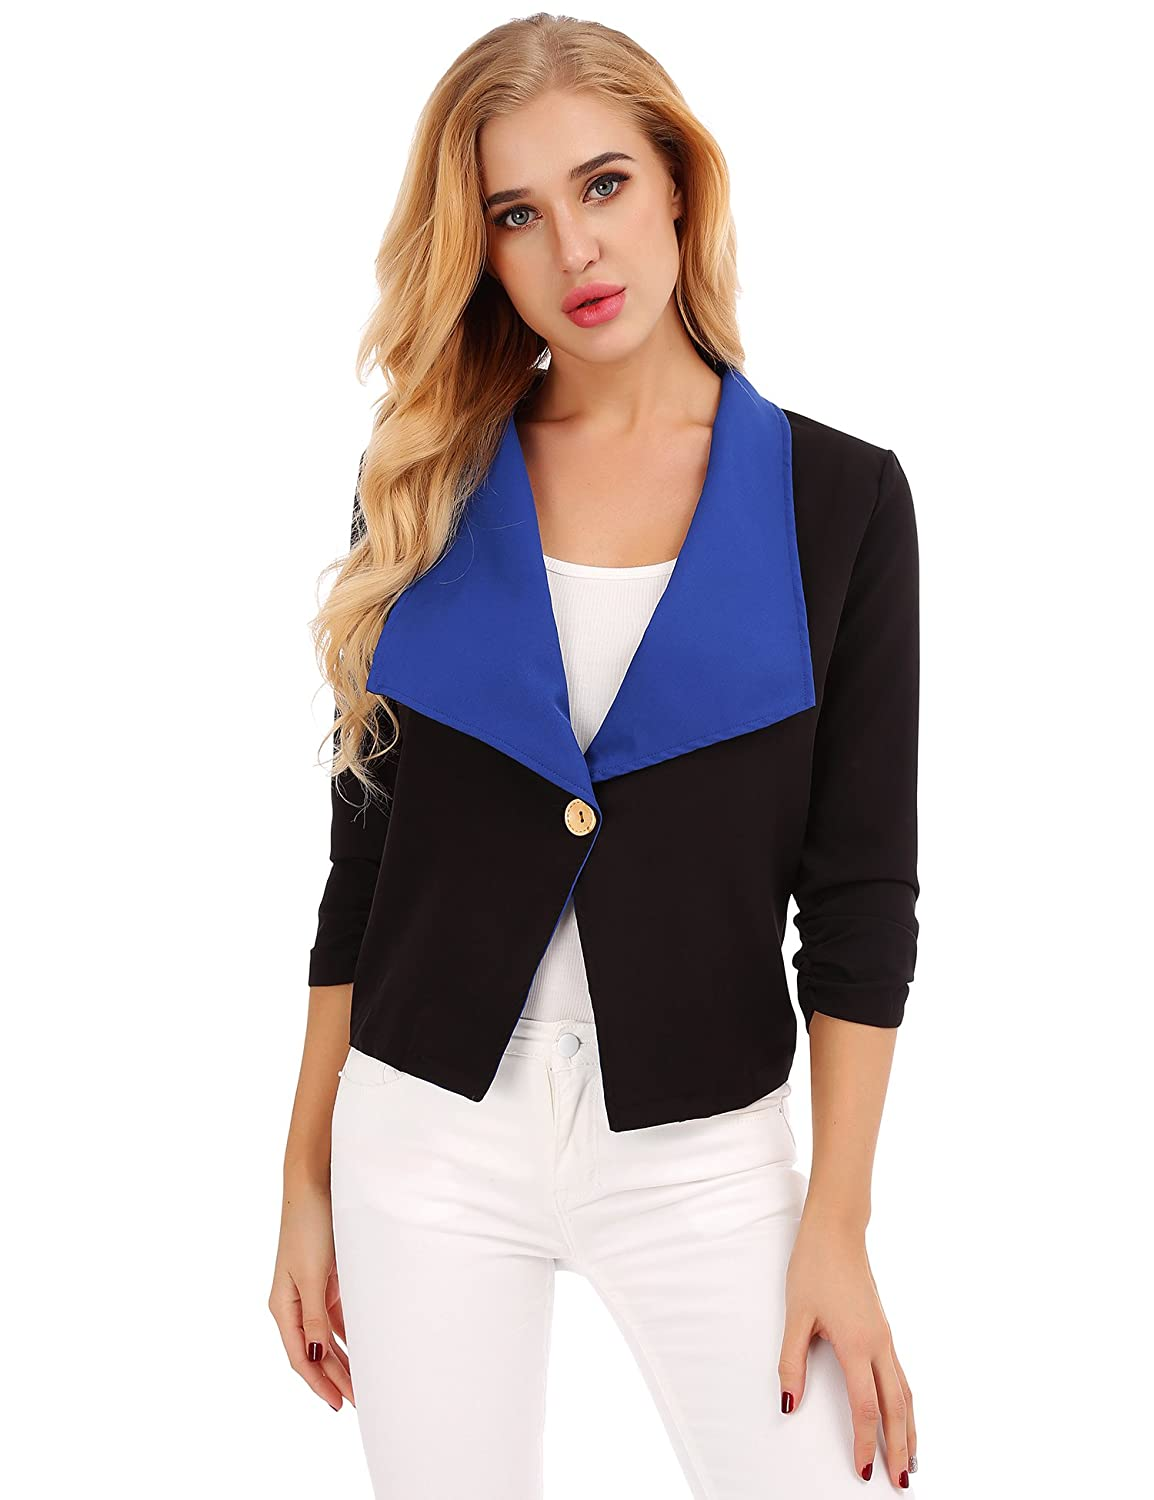 Back To Search Resultswomen's Clothing Blazers Women Office Work Black Blue Pink Red Blazer Plus Size Womens Slim Fit Blazer Long Sleeve Business Casual Suit Jacket 4xl Quality And Quantity Assured